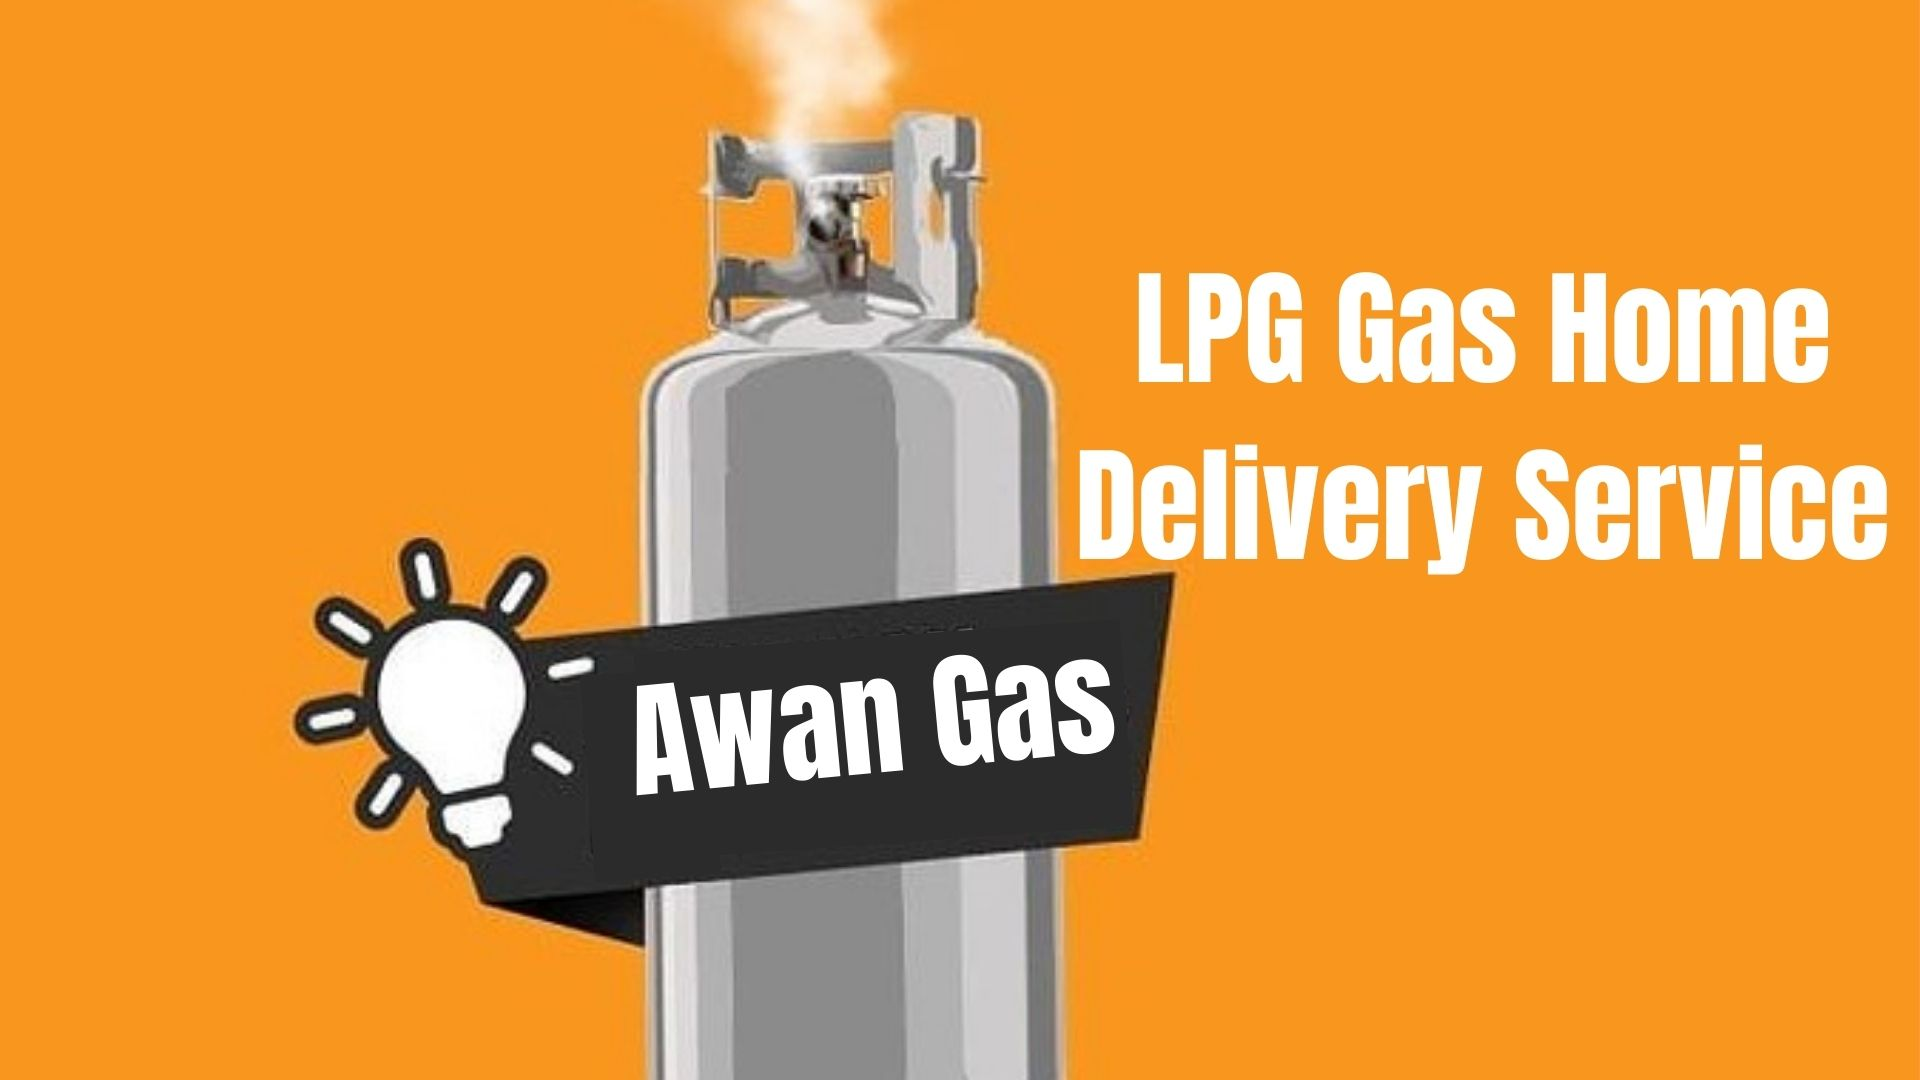 LPG Gas Home Delivery Service